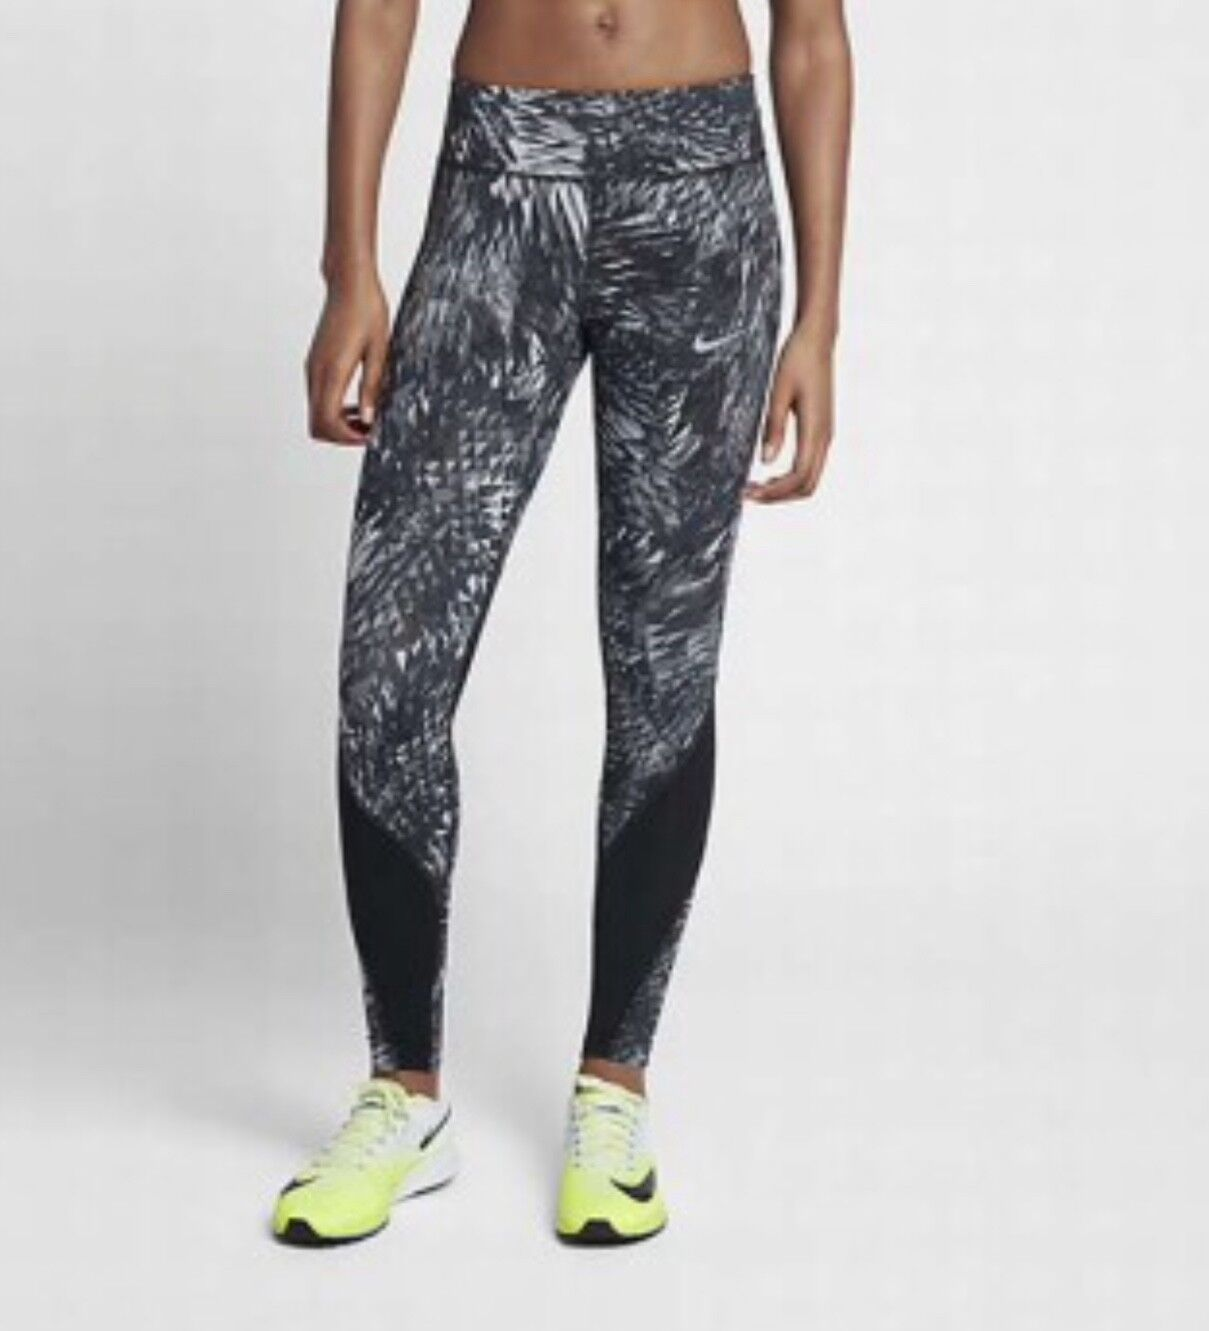 NIKE  POWER EPIC LUX RUNNING TIGHTS LEGGING GYM TRAINING 831800-021 Xtra Small  convenient